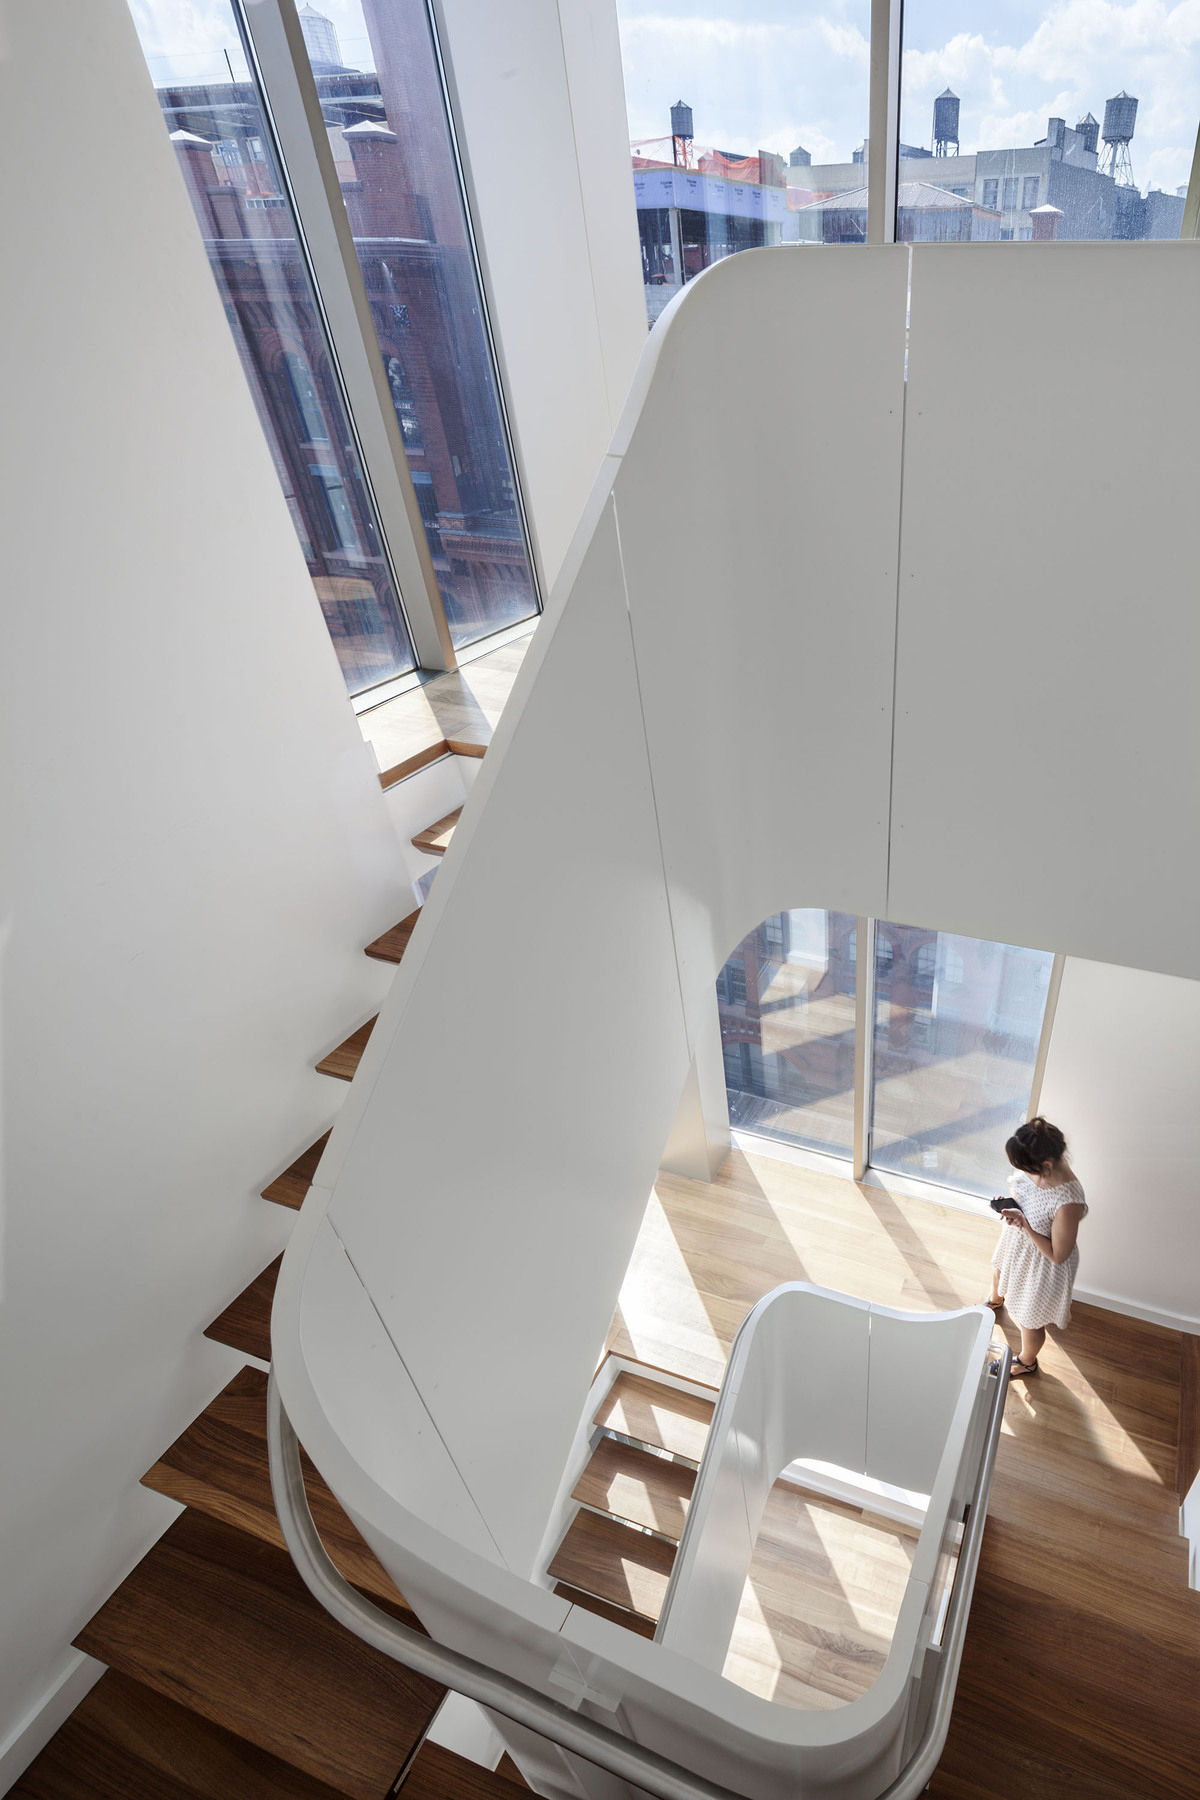 Mulberry-House-Newyork-Shop-Architects-6.jpg